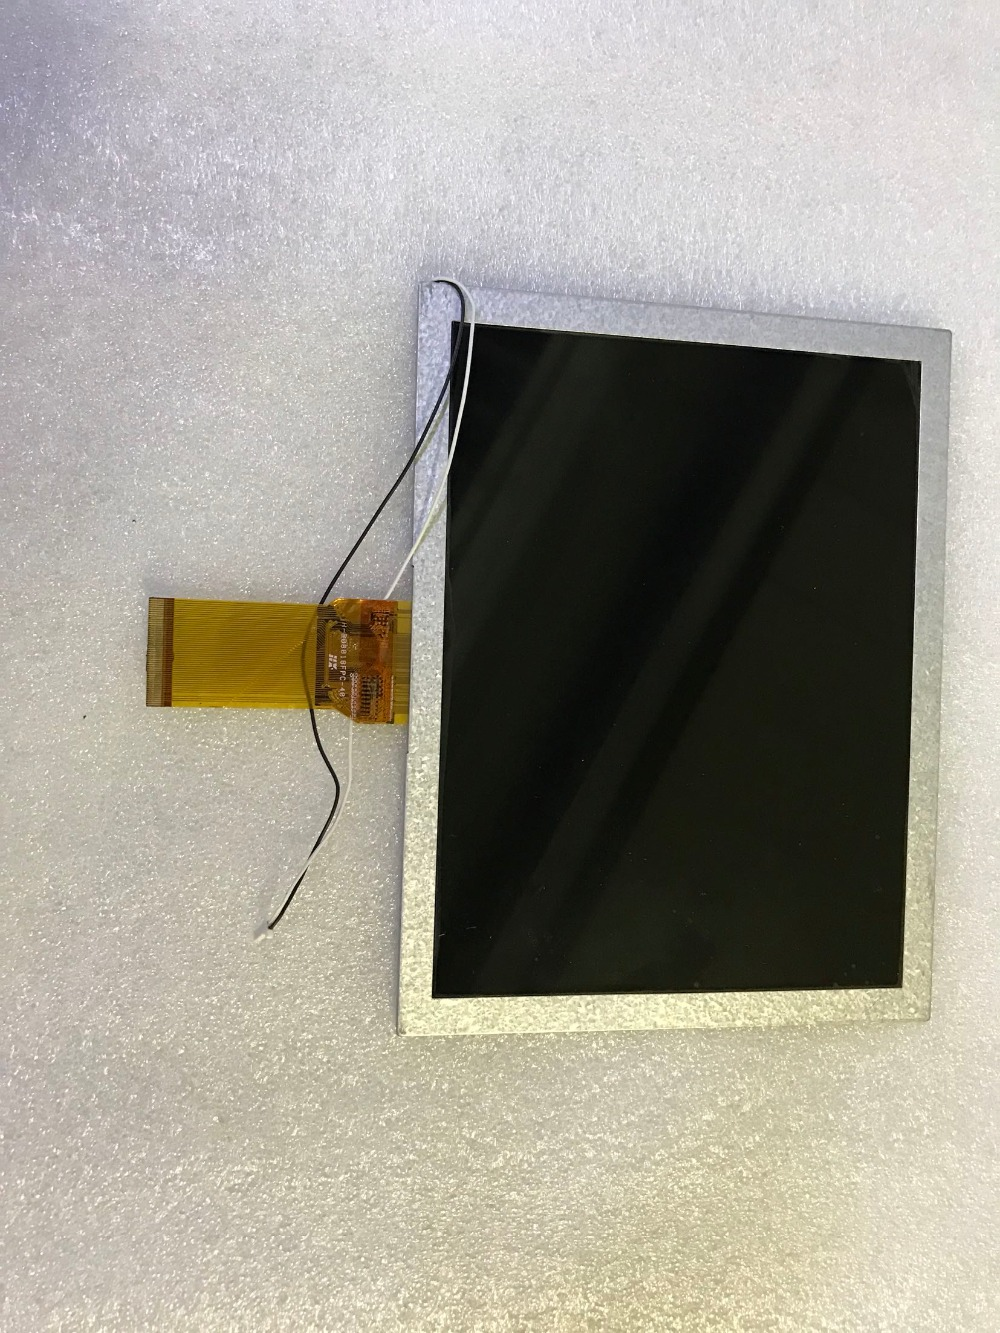 free shipping Original New 8 inch LCD screen original cable Model: H-B08018FPC-40 free shipping original new 7 inch lcd screen model lq070t3gg04